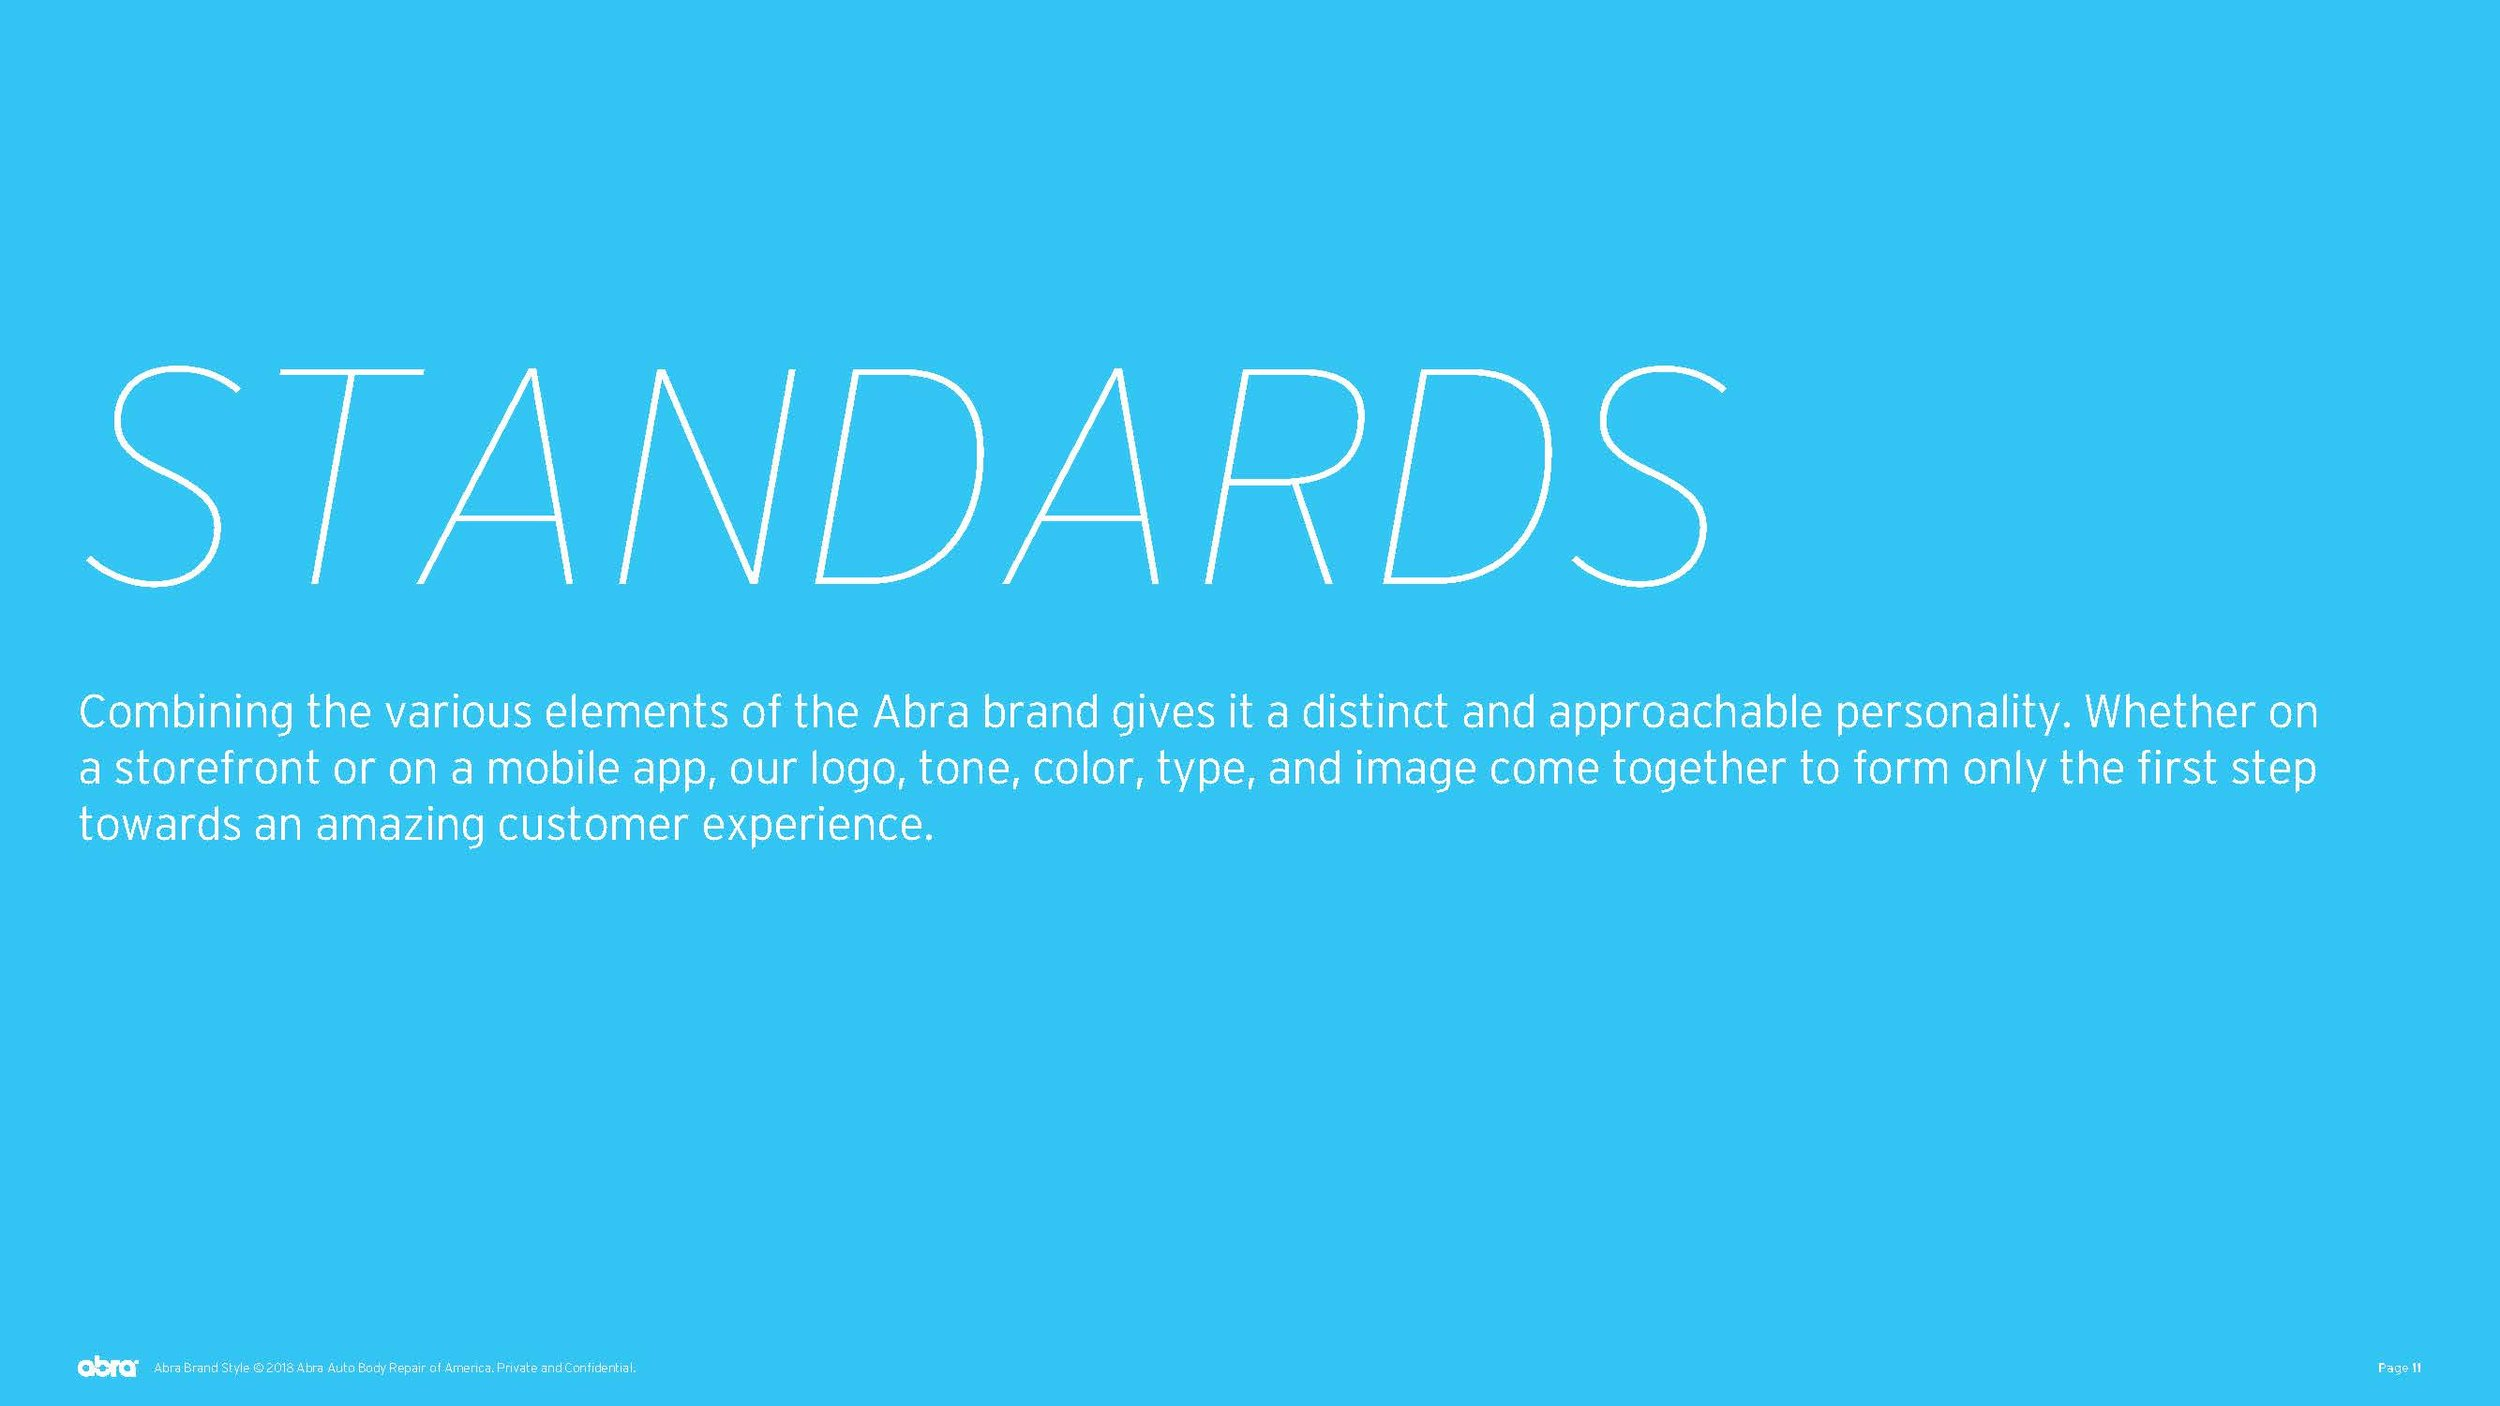 abra brand style guide - R5_Page_11.jpg